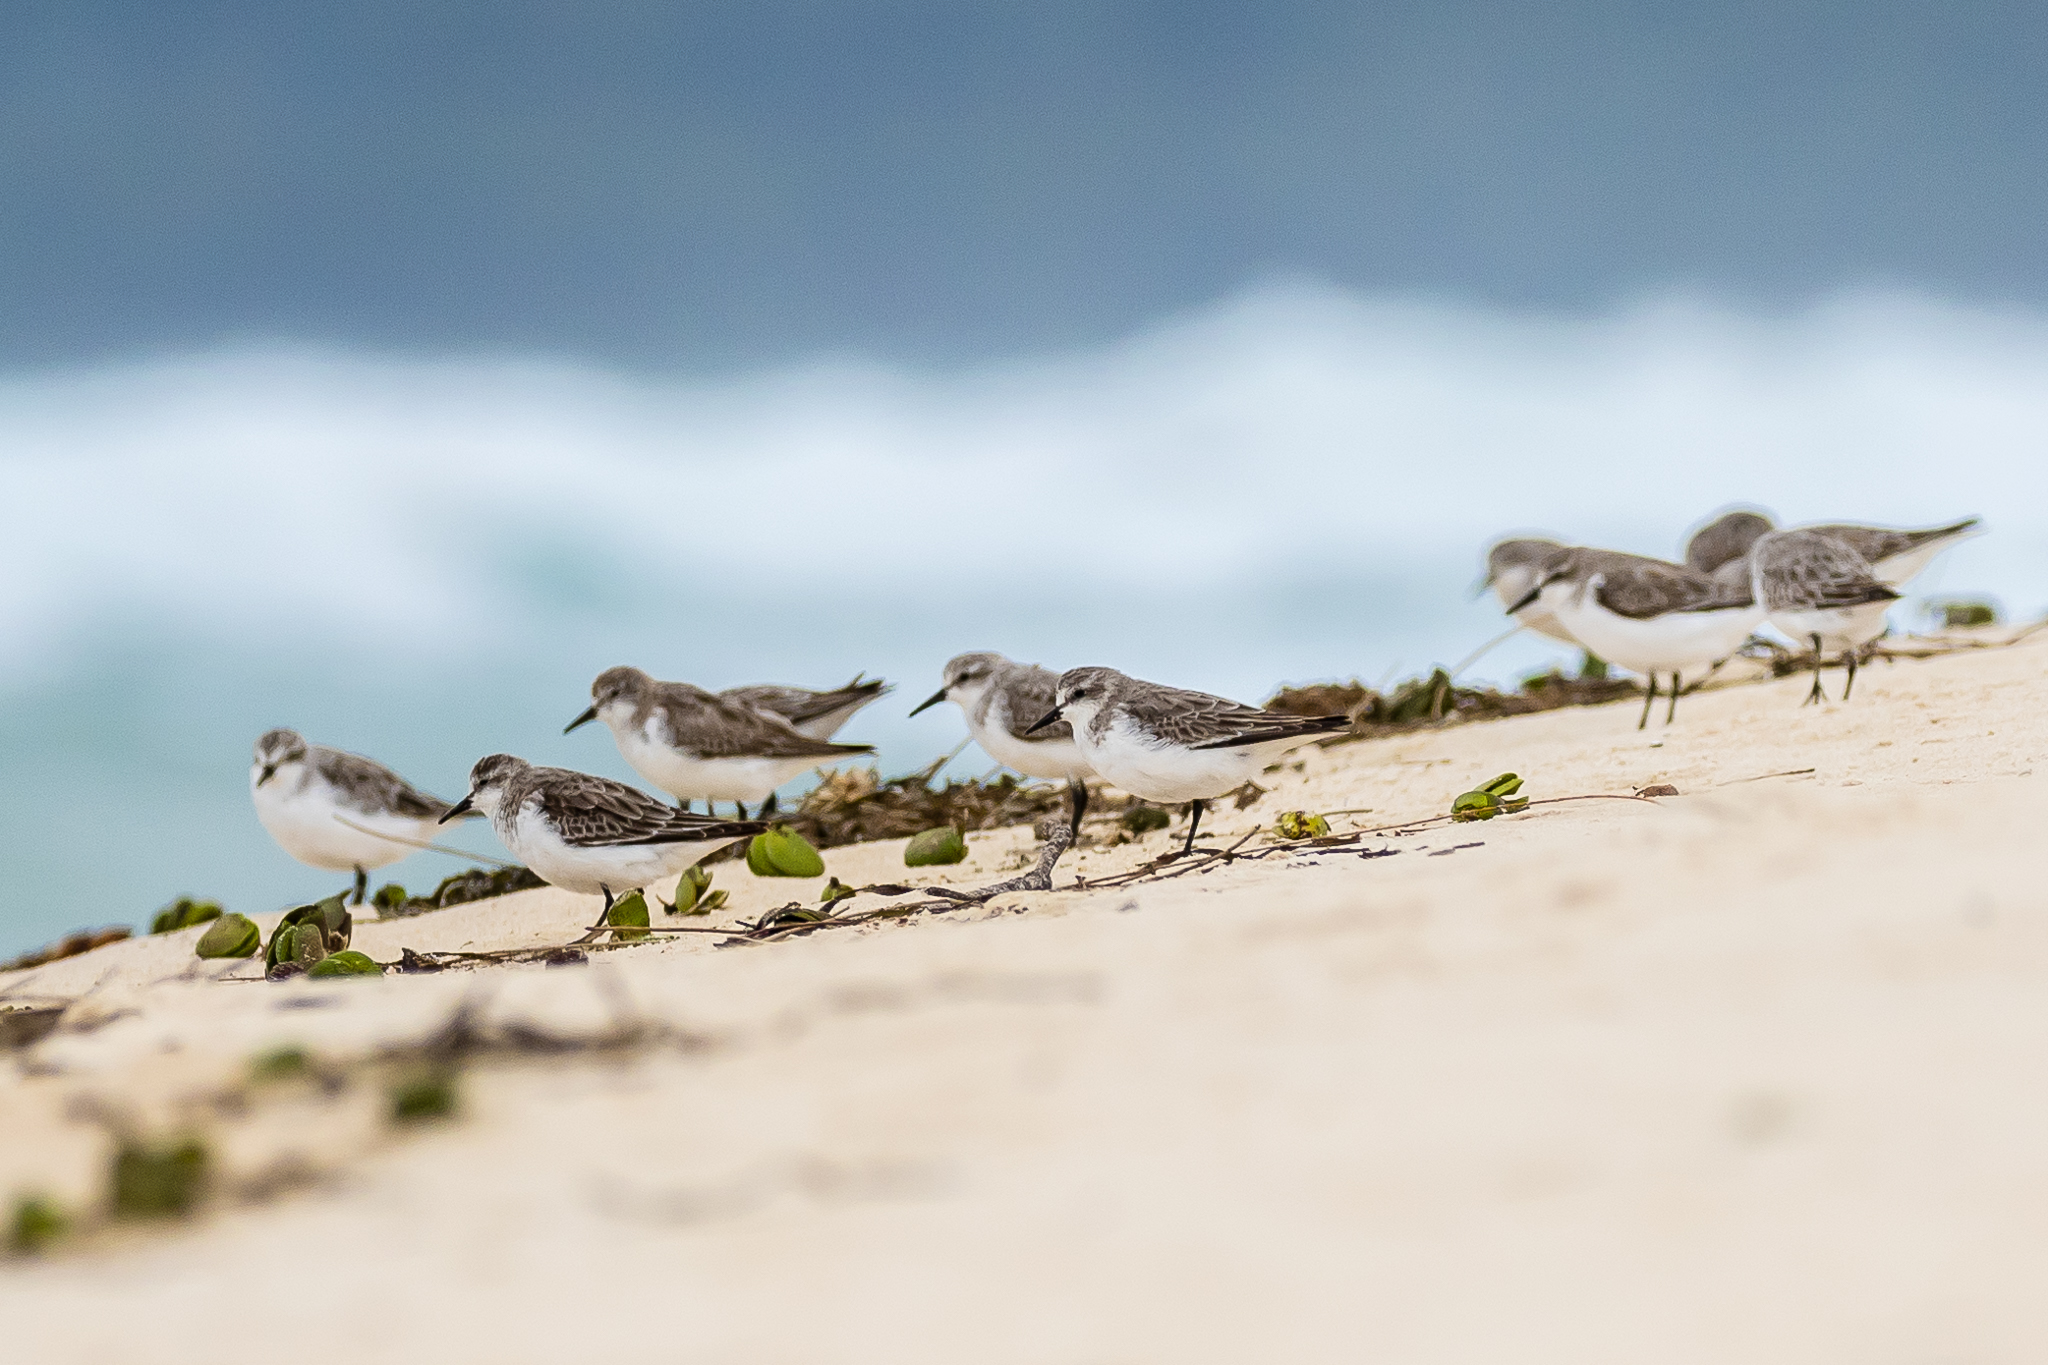 A group of young Red-capped Plovers brace against the sand and surf. Red-capped Plovers nest and feed on the beach, searching for molluscs and small crustaceans.